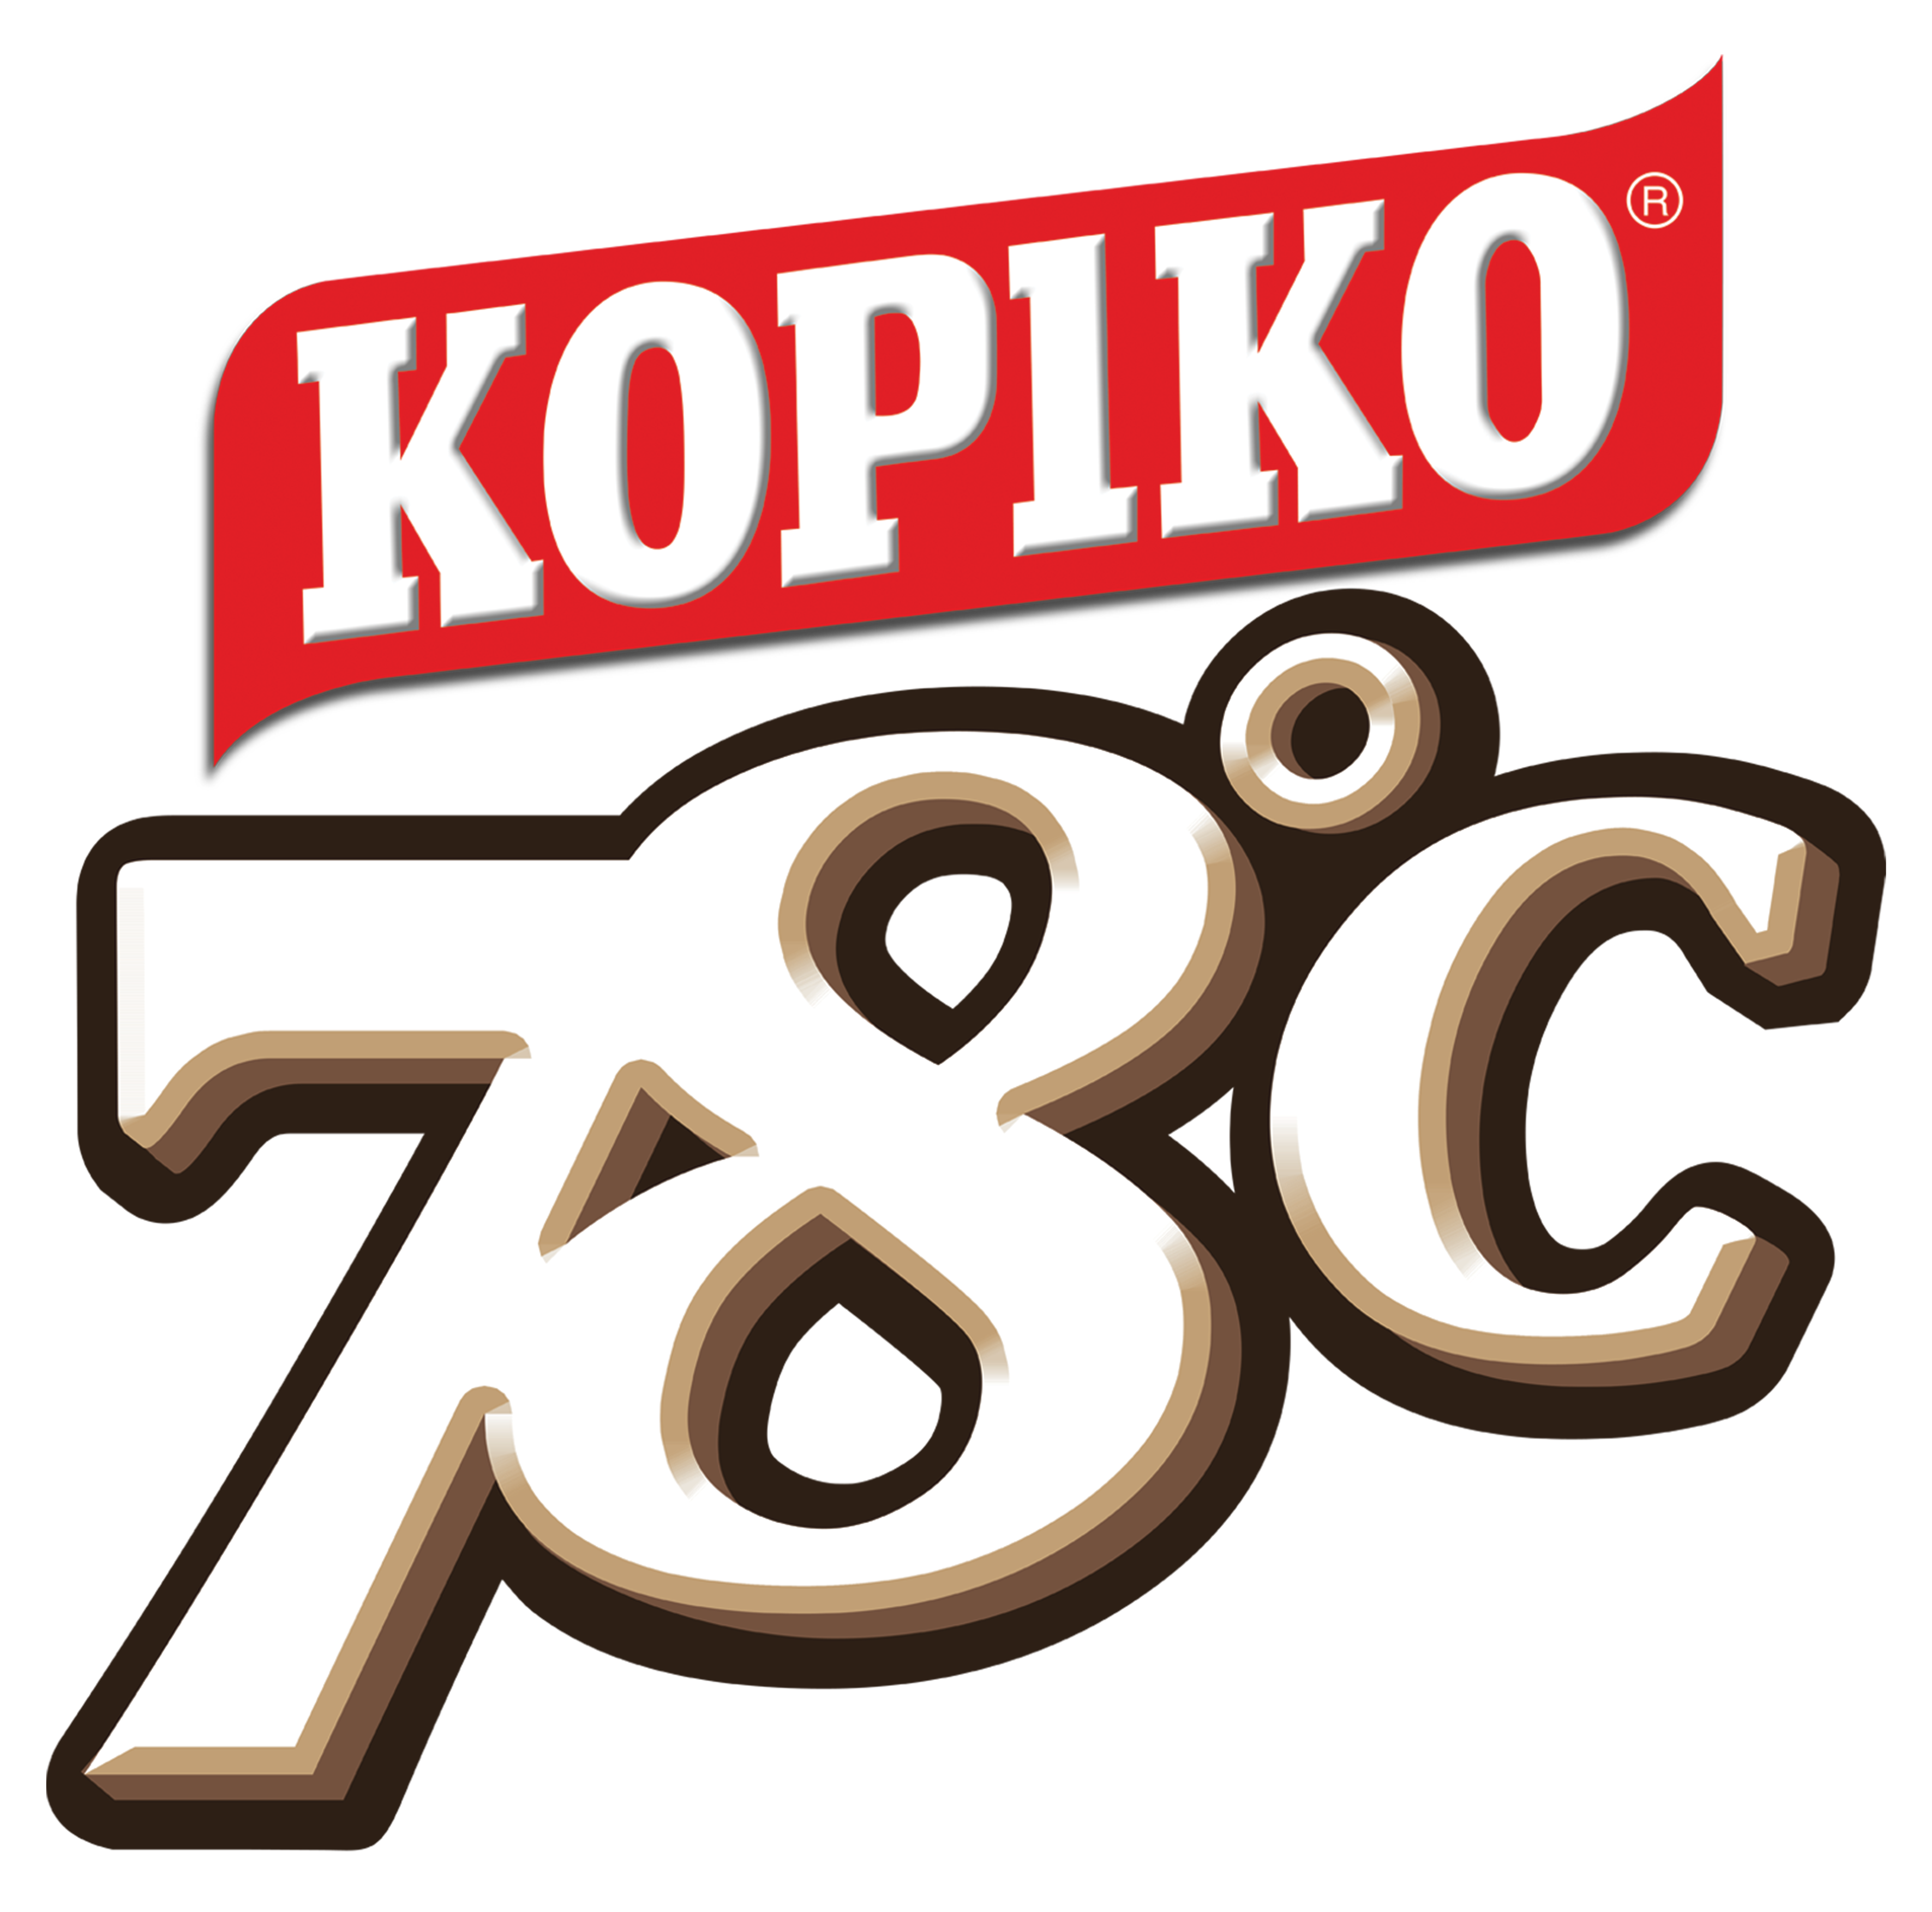 Kopiko 78 partners with Rappler to showcase the brand's refreshing recharge  experience, spreading good vibes for coffee lovers on the go.